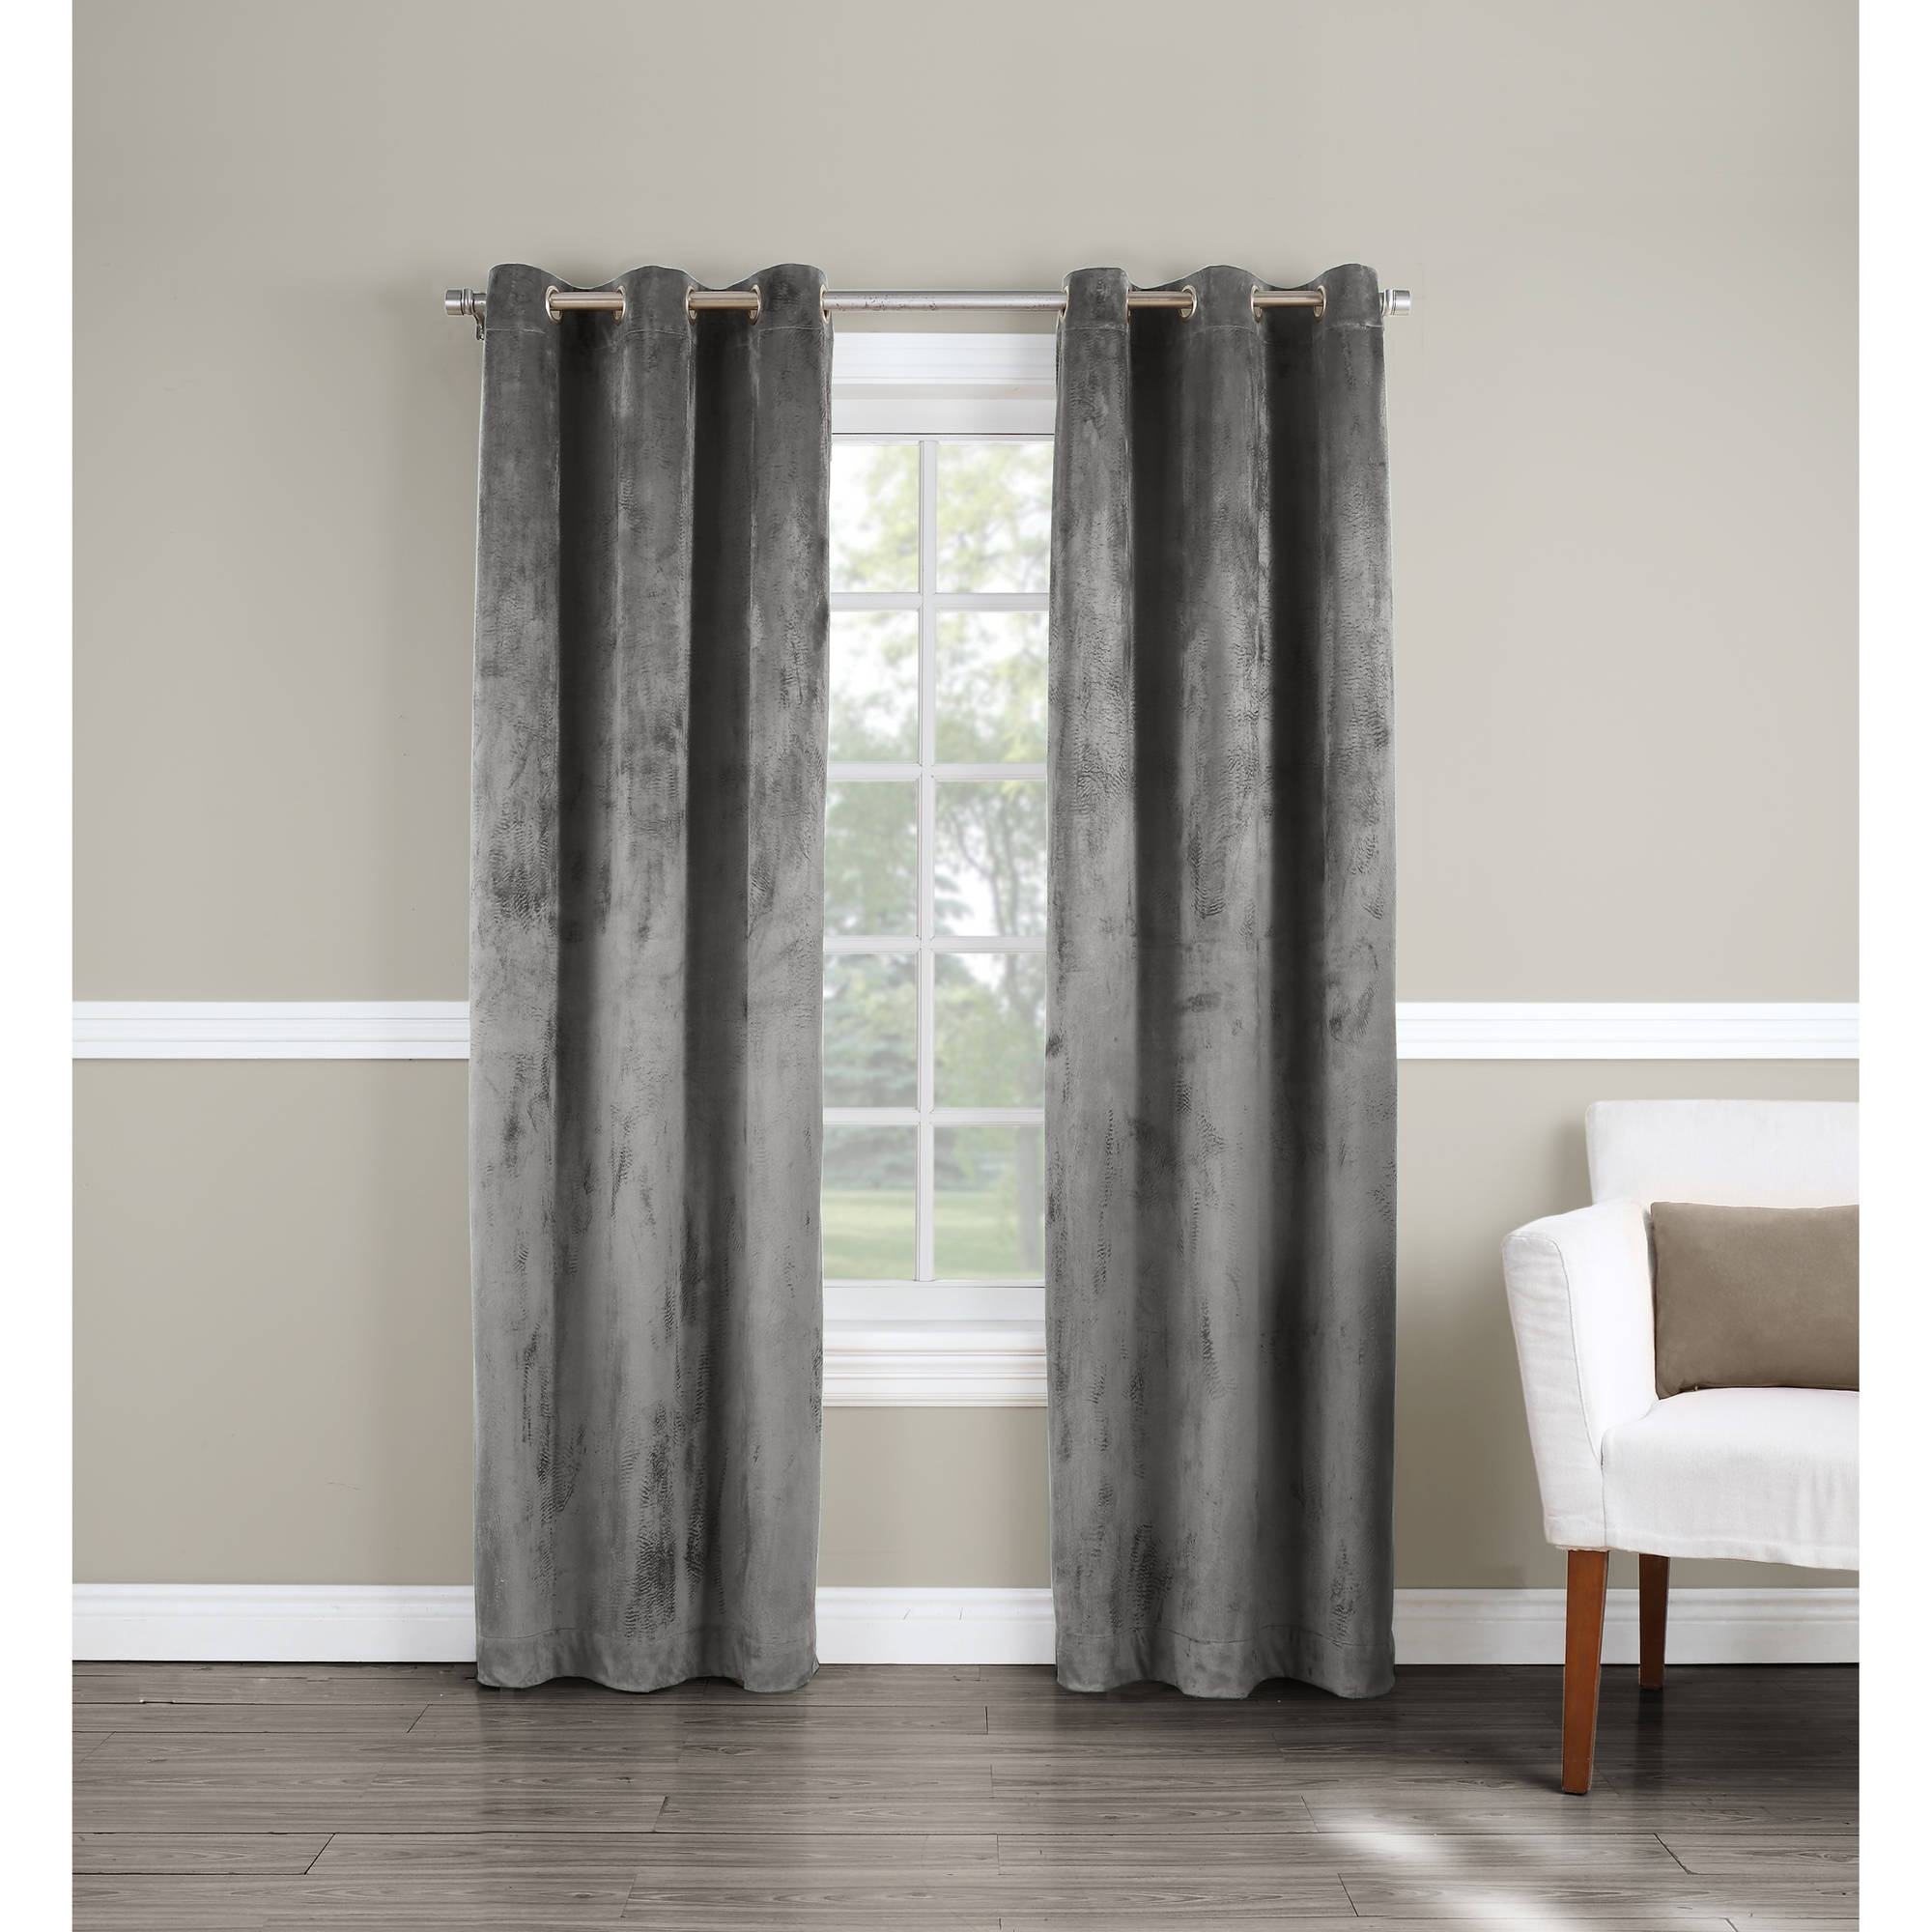 Curtains 90 Inch Curtain Panels Blackout Curtains 96 Inches With 96 Inches Long Curtains (Image 11 of 25)